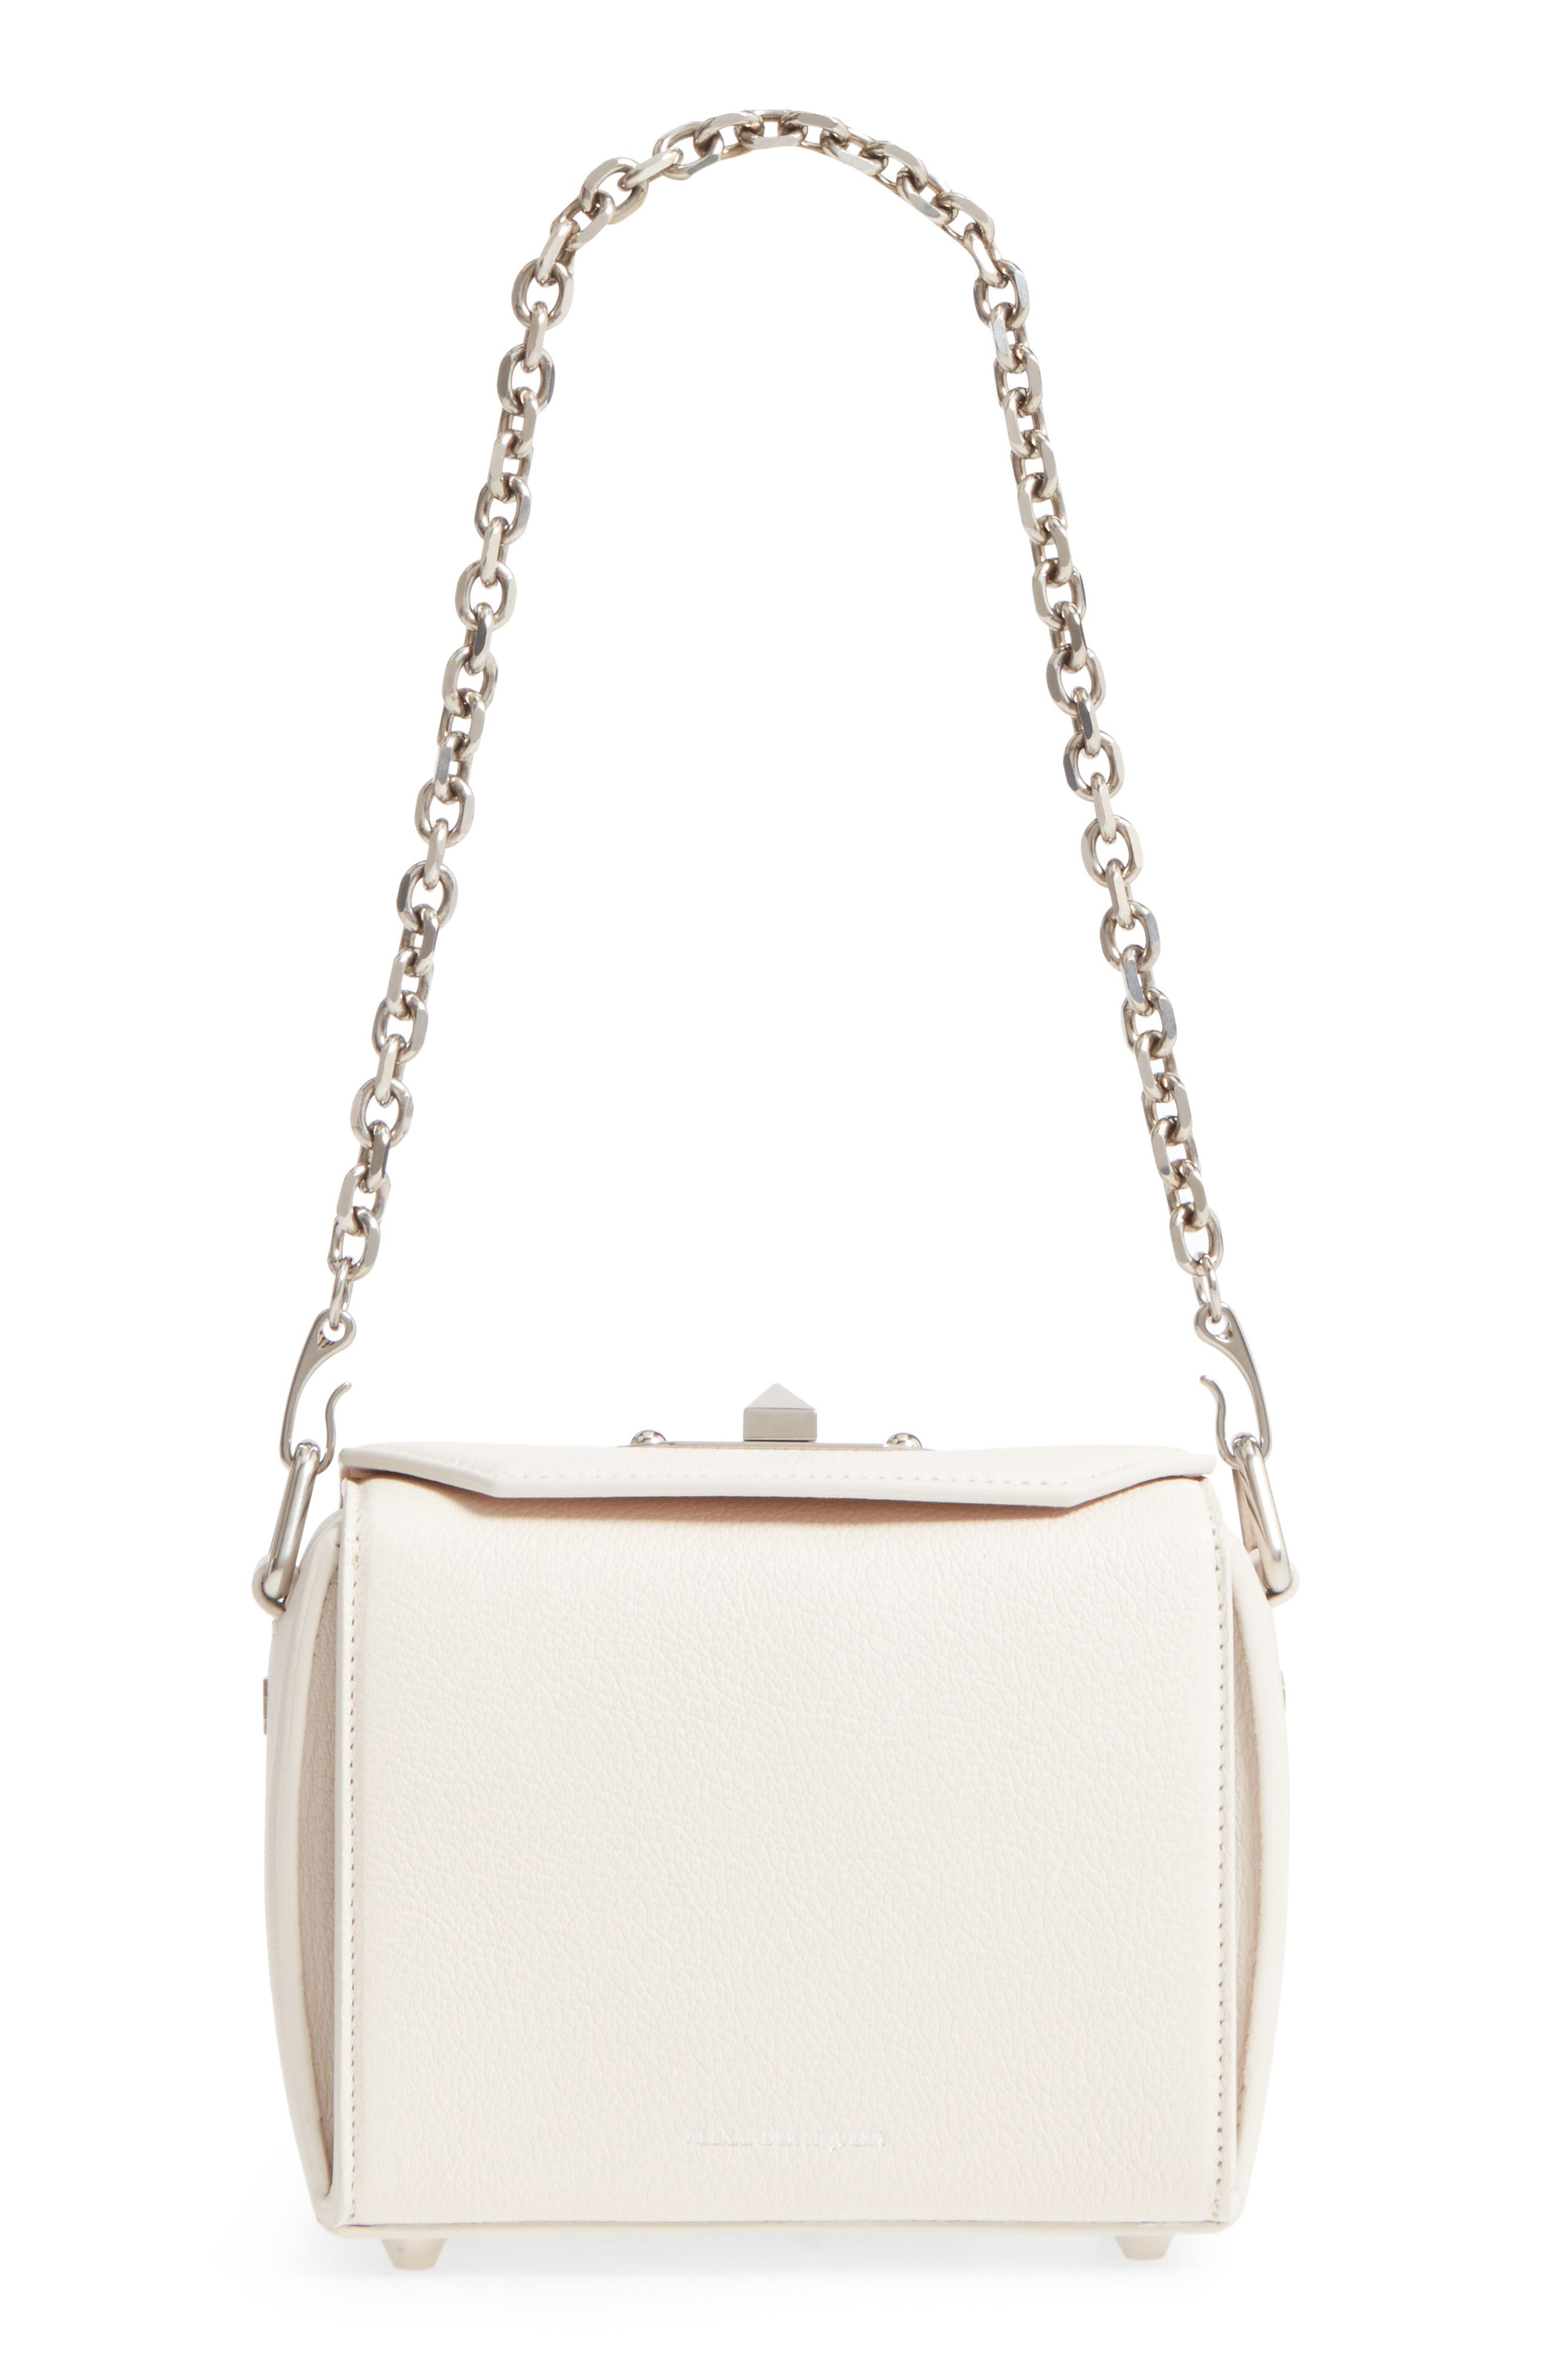 Main Image - Alexander McQueen Box Bag 16 Grained Leather Bag